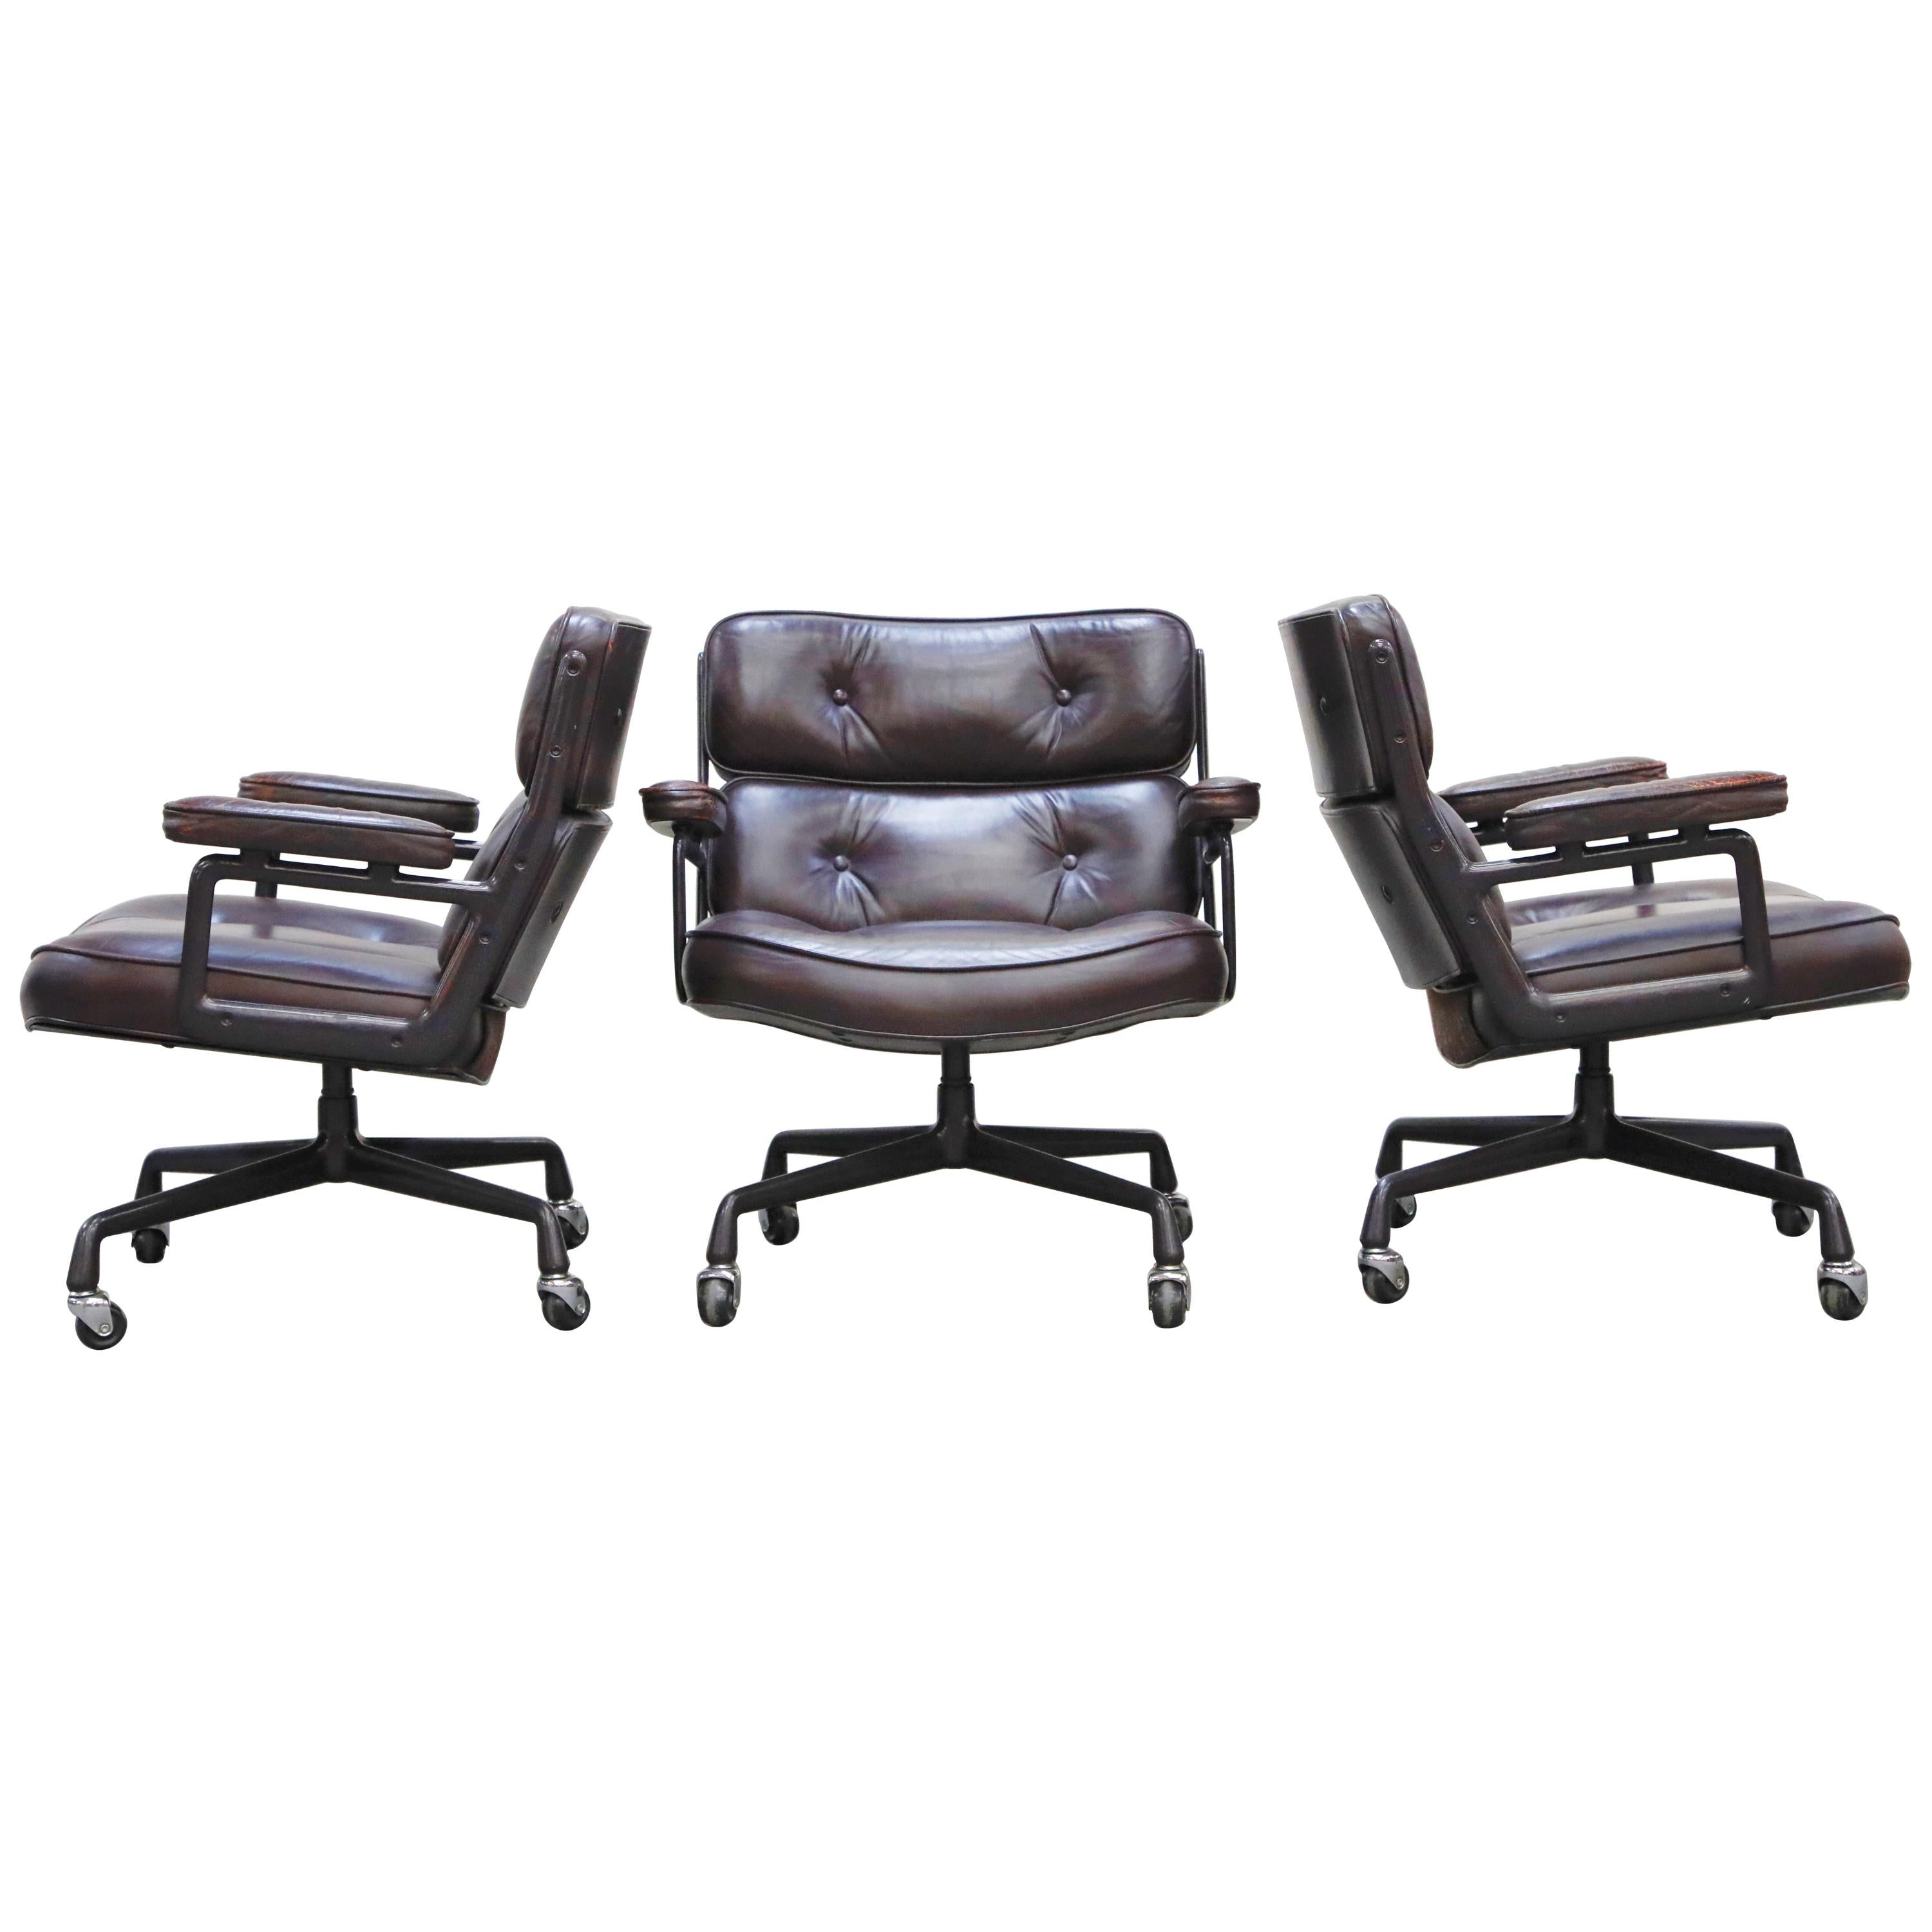 Remarkable Antique And Vintage Office Chairs And Desk Chairs 2 125 Alphanode Cool Chair Designs And Ideas Alphanodeonline